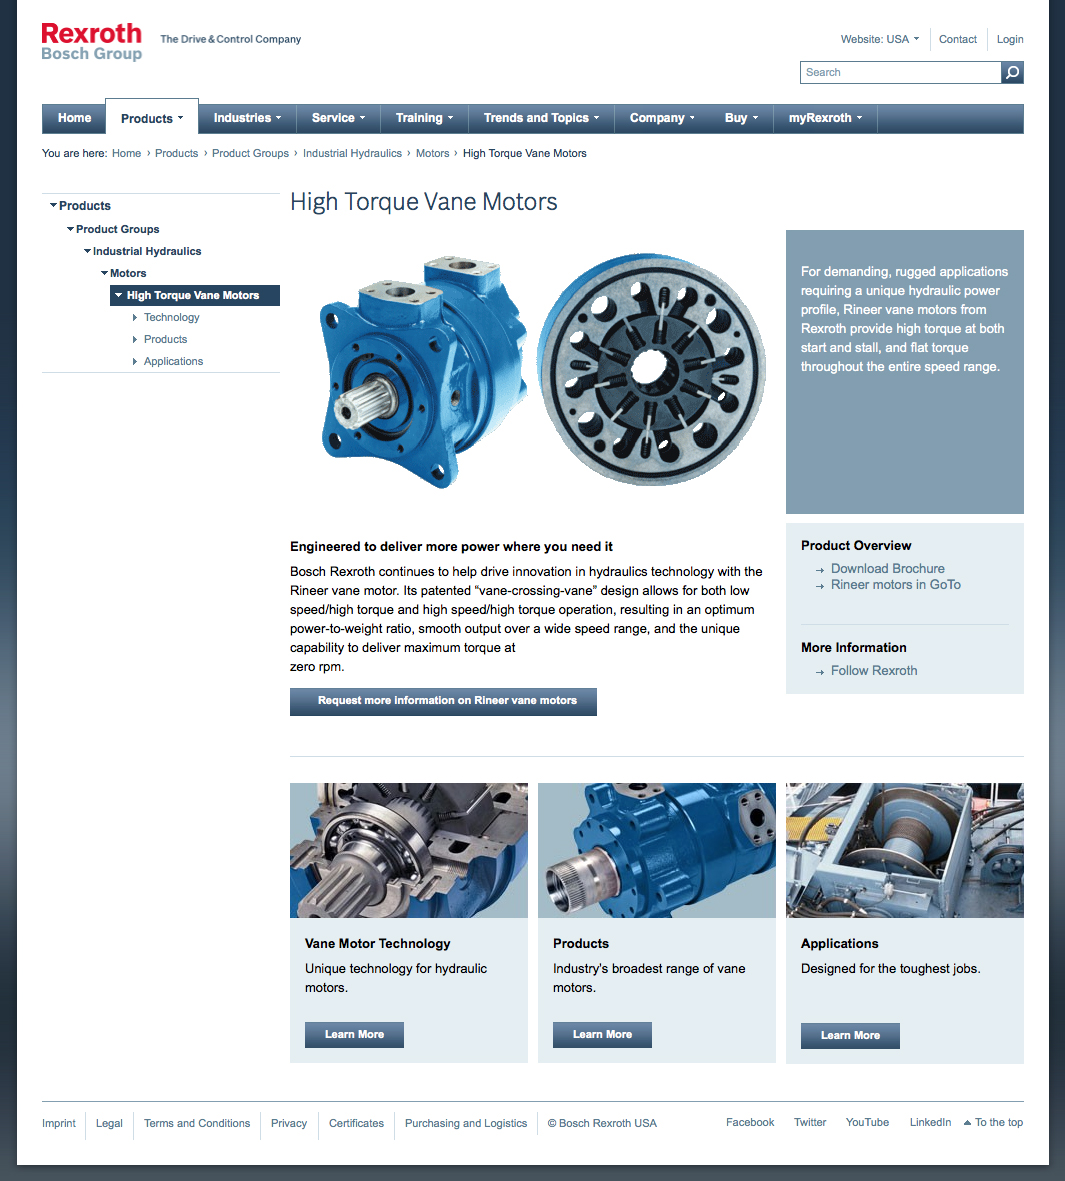 New Rexroth Web pages highlight Rineer high-torque hydraulic